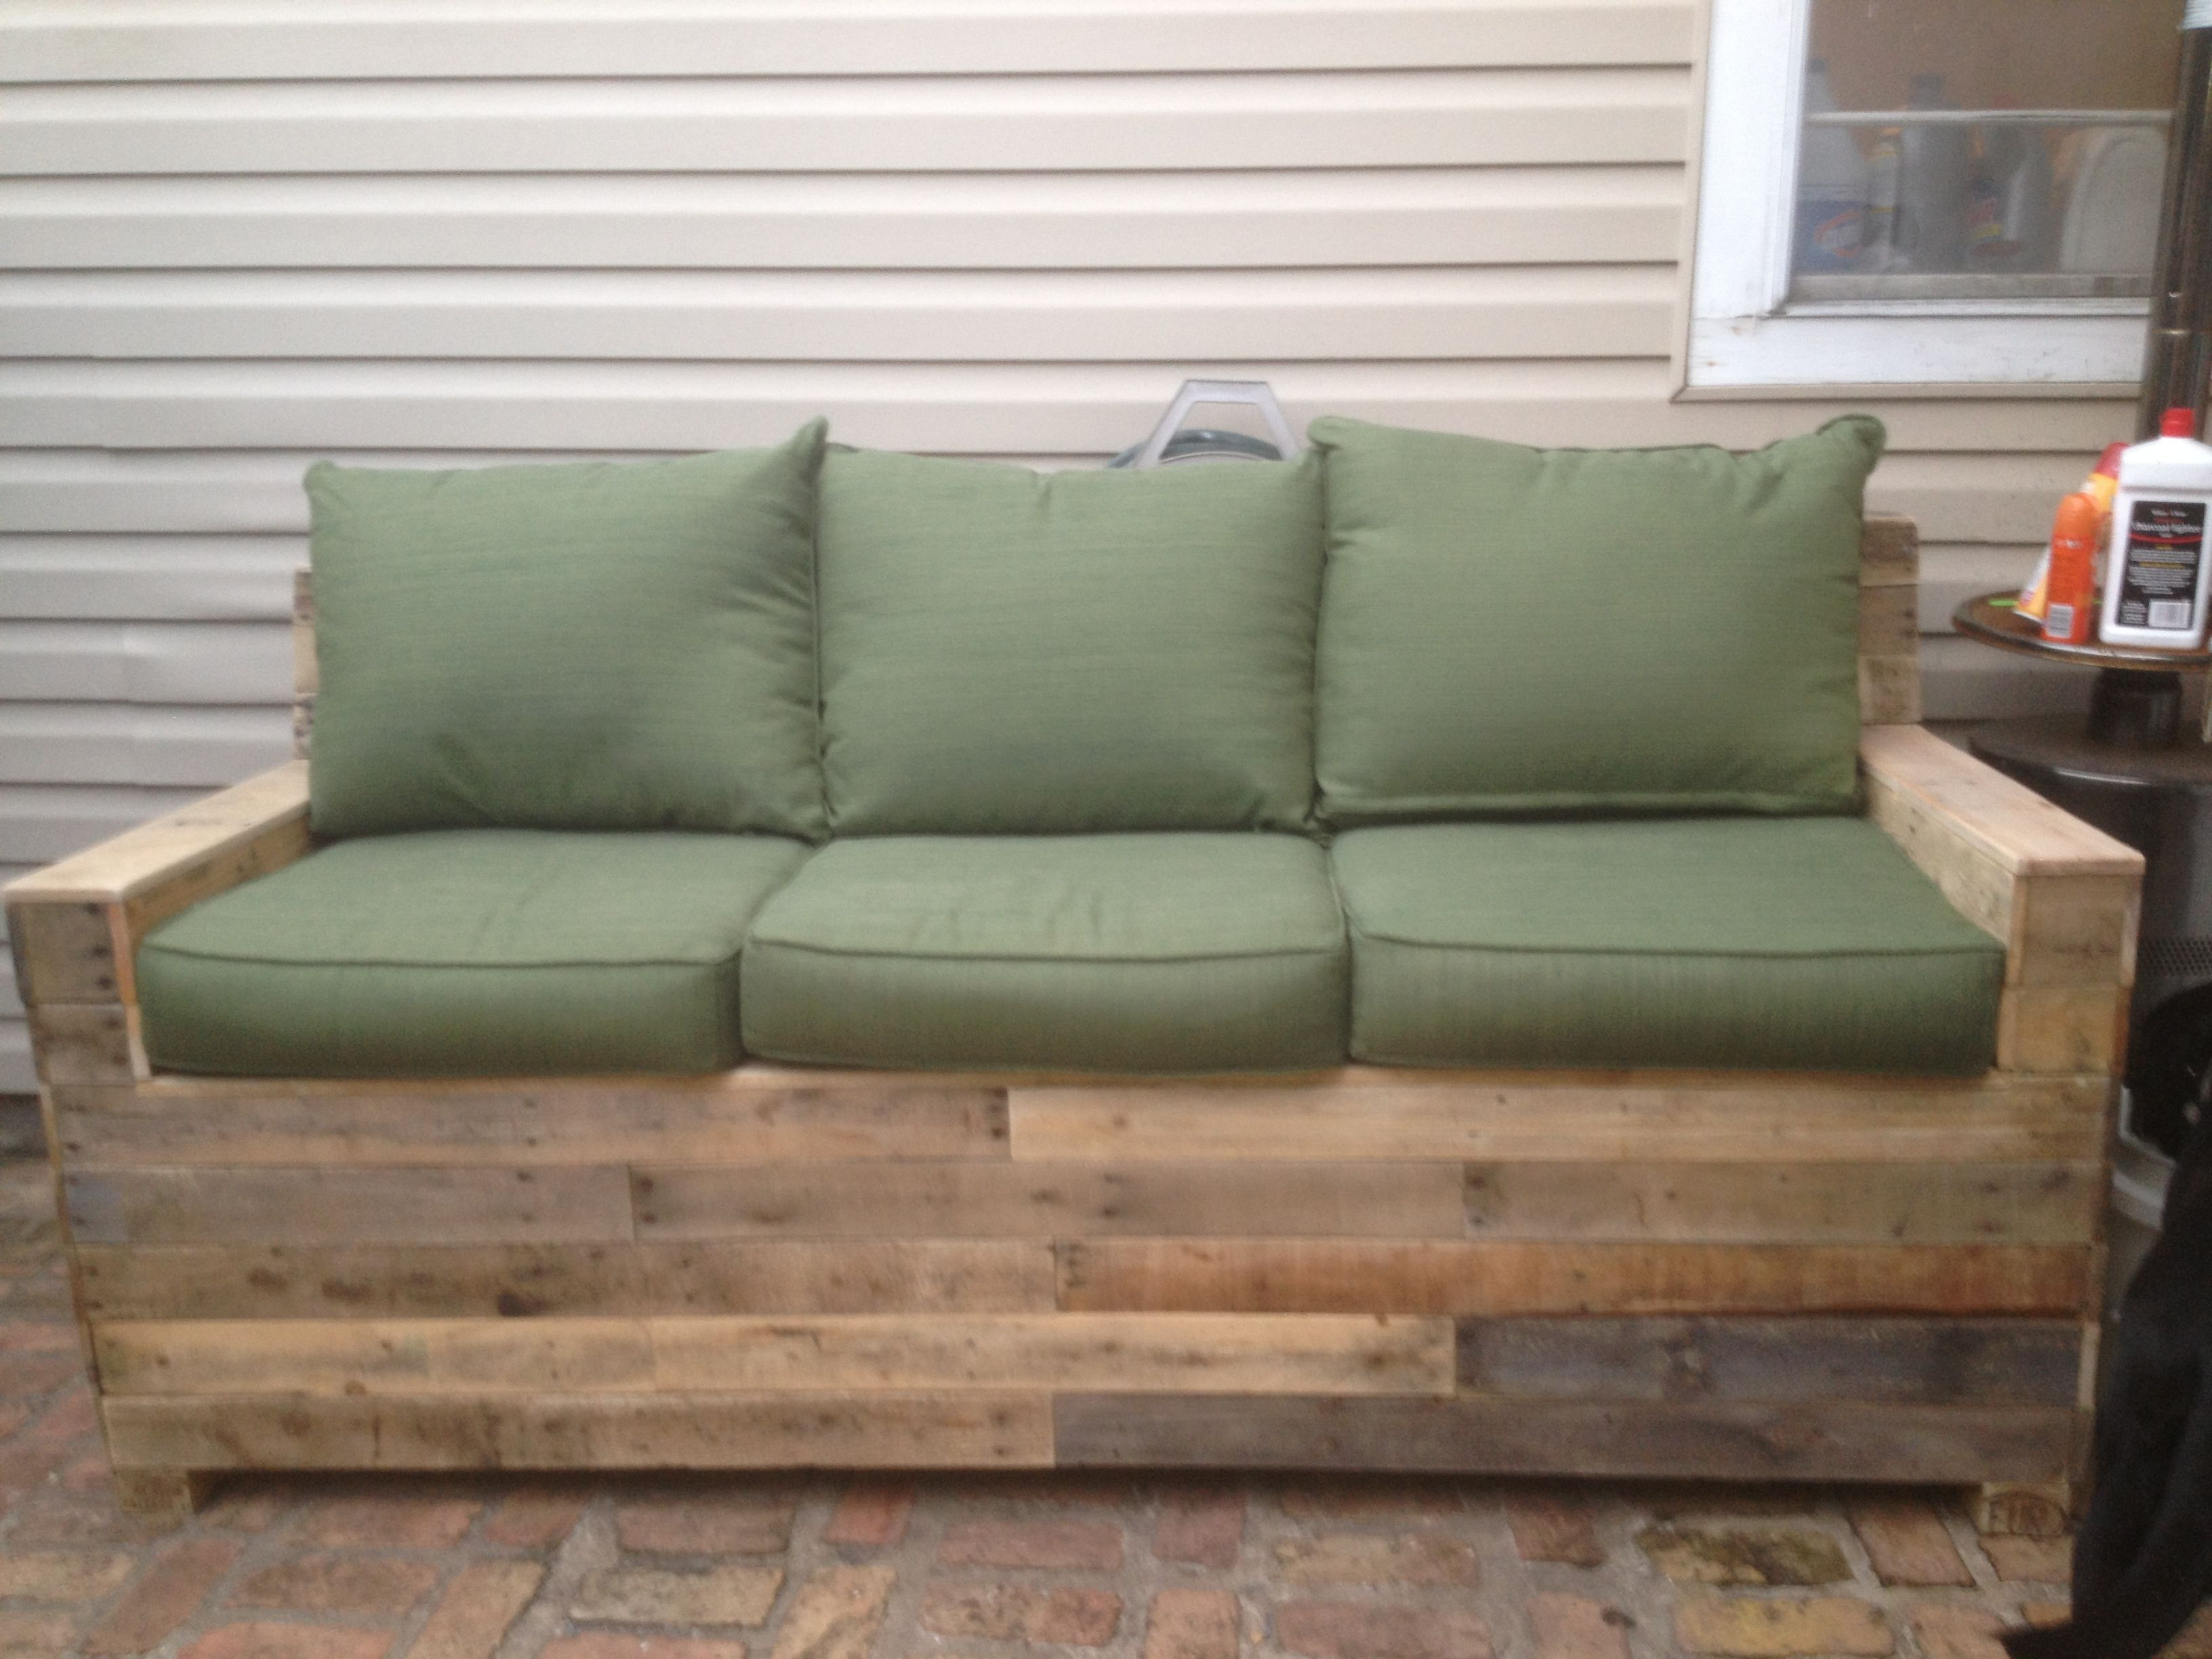 sale sofa tables hire a steam cleaner for pallet 600 reclaimed wood furniture from